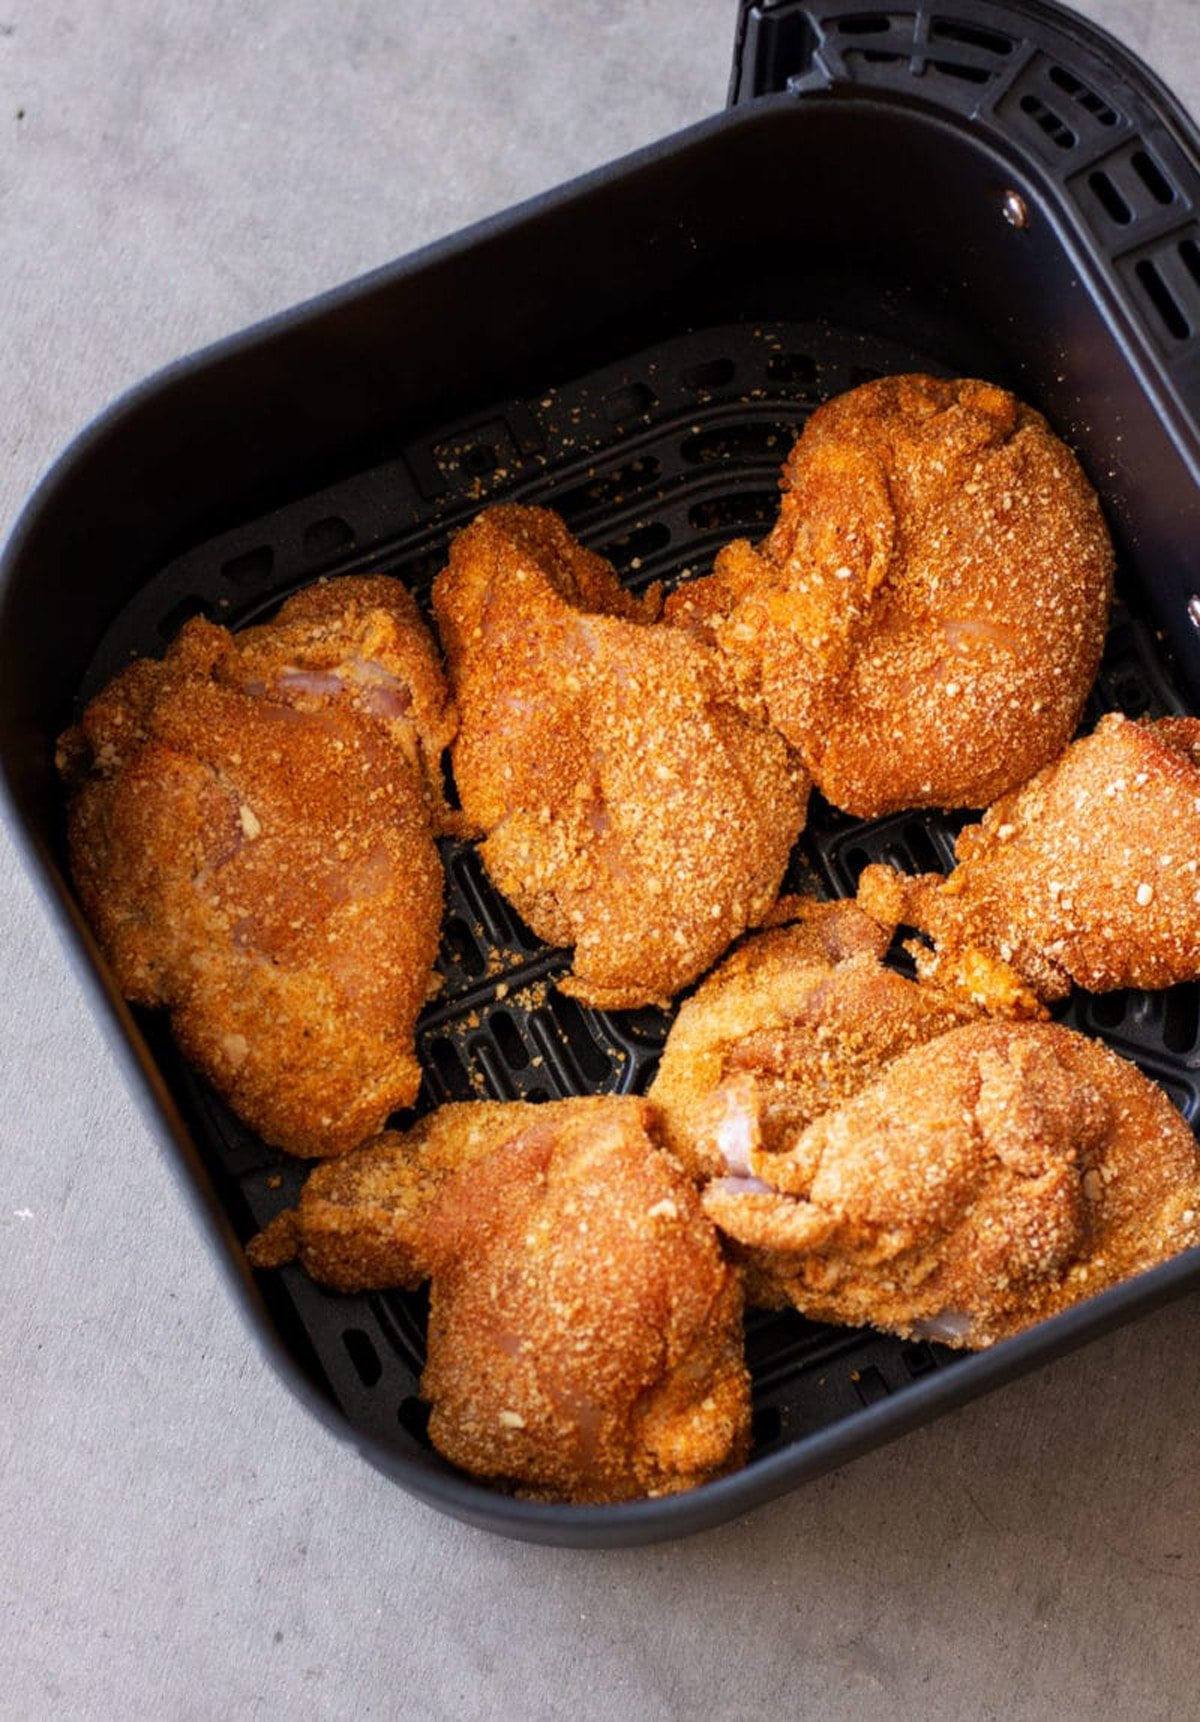 Air Fryer Pan containing breaded chicken thighs.